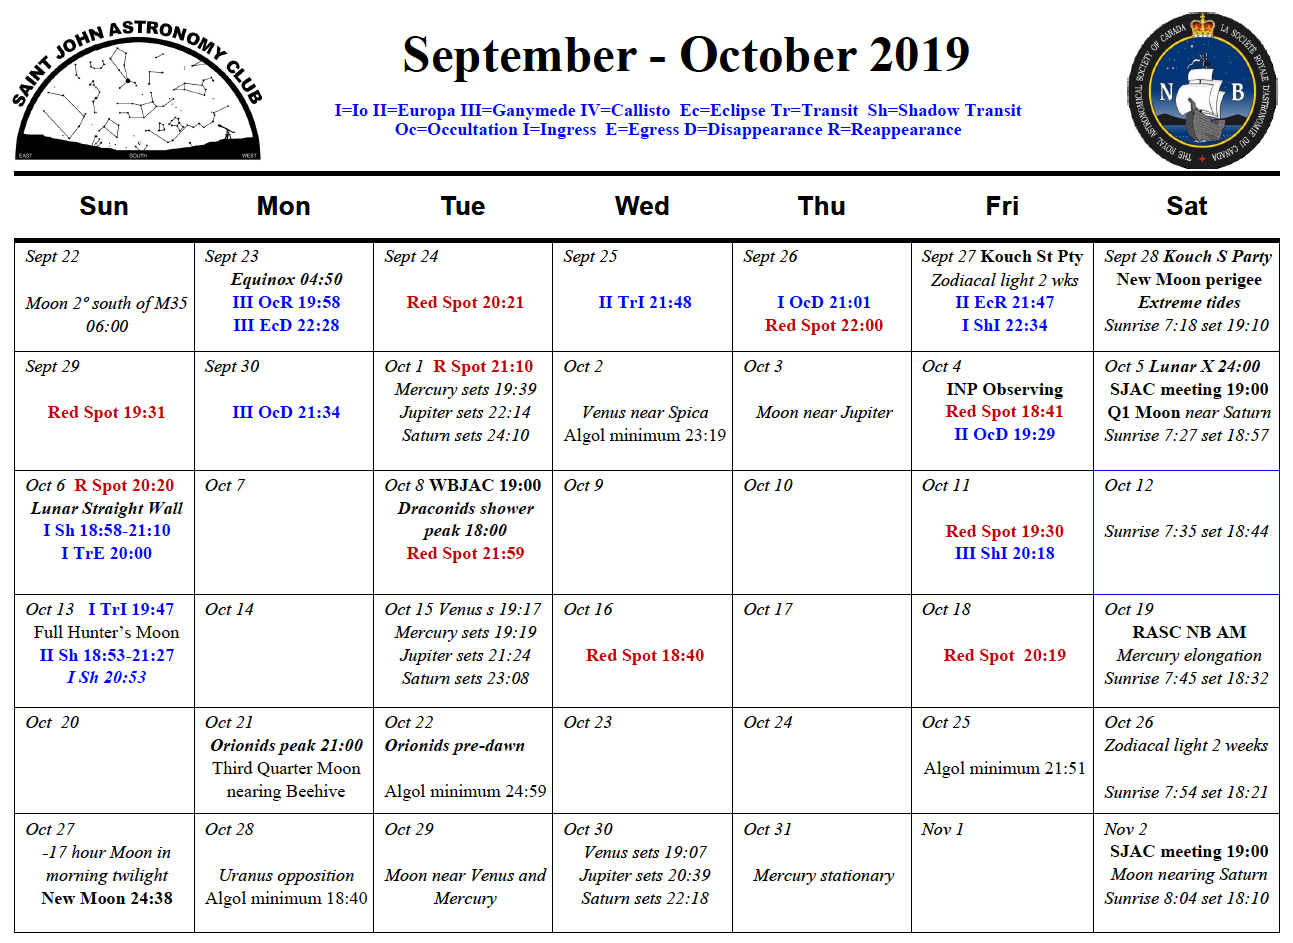 Photo showing the September-October 2019 Calendar for the Saint John Astronomy Club